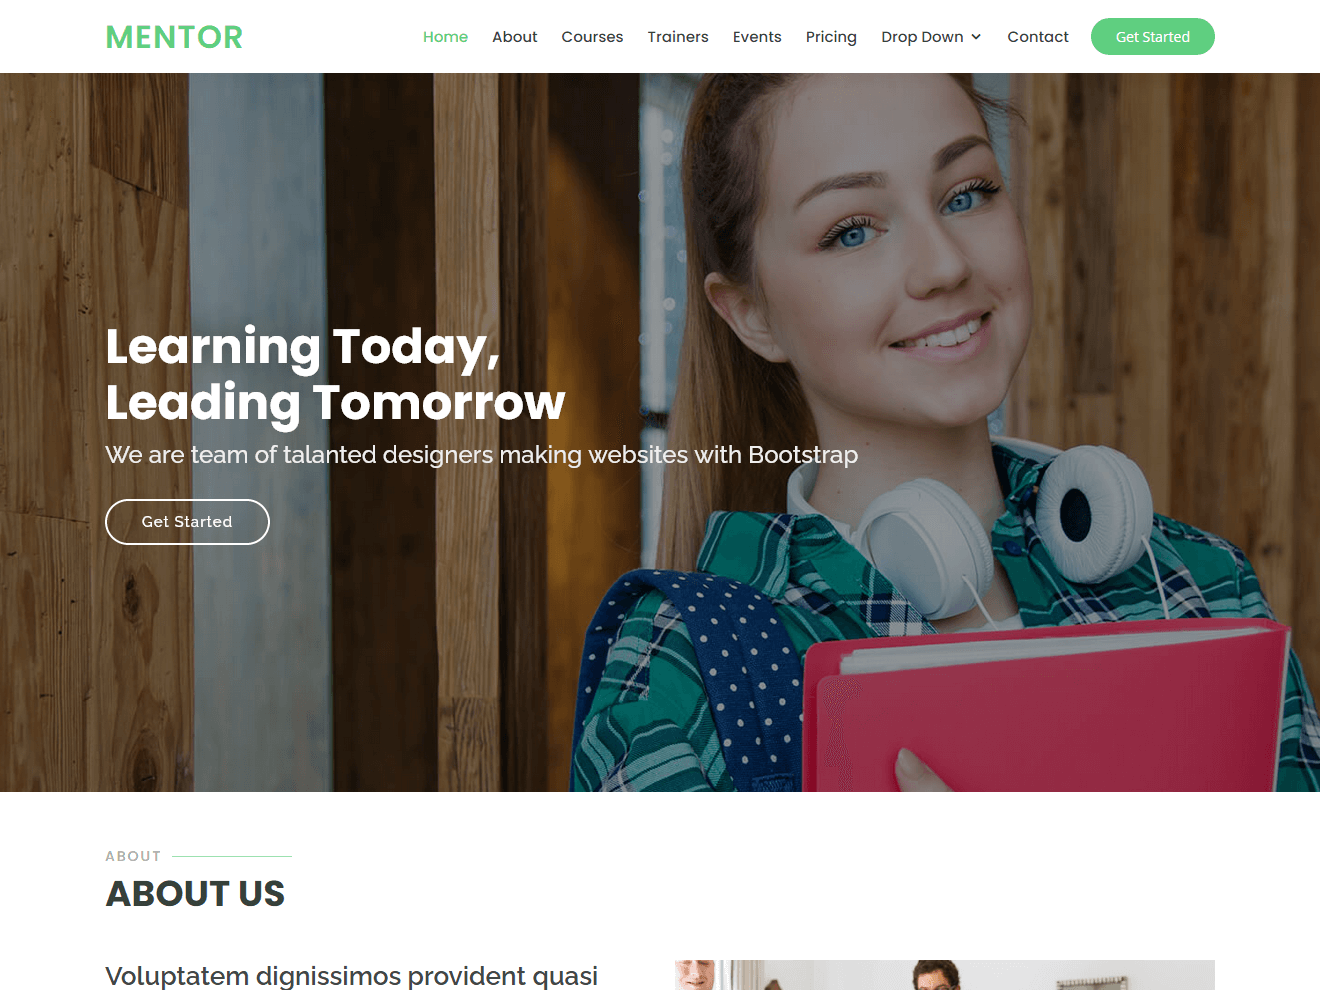 Mentor - Education Bootstrap Website Template